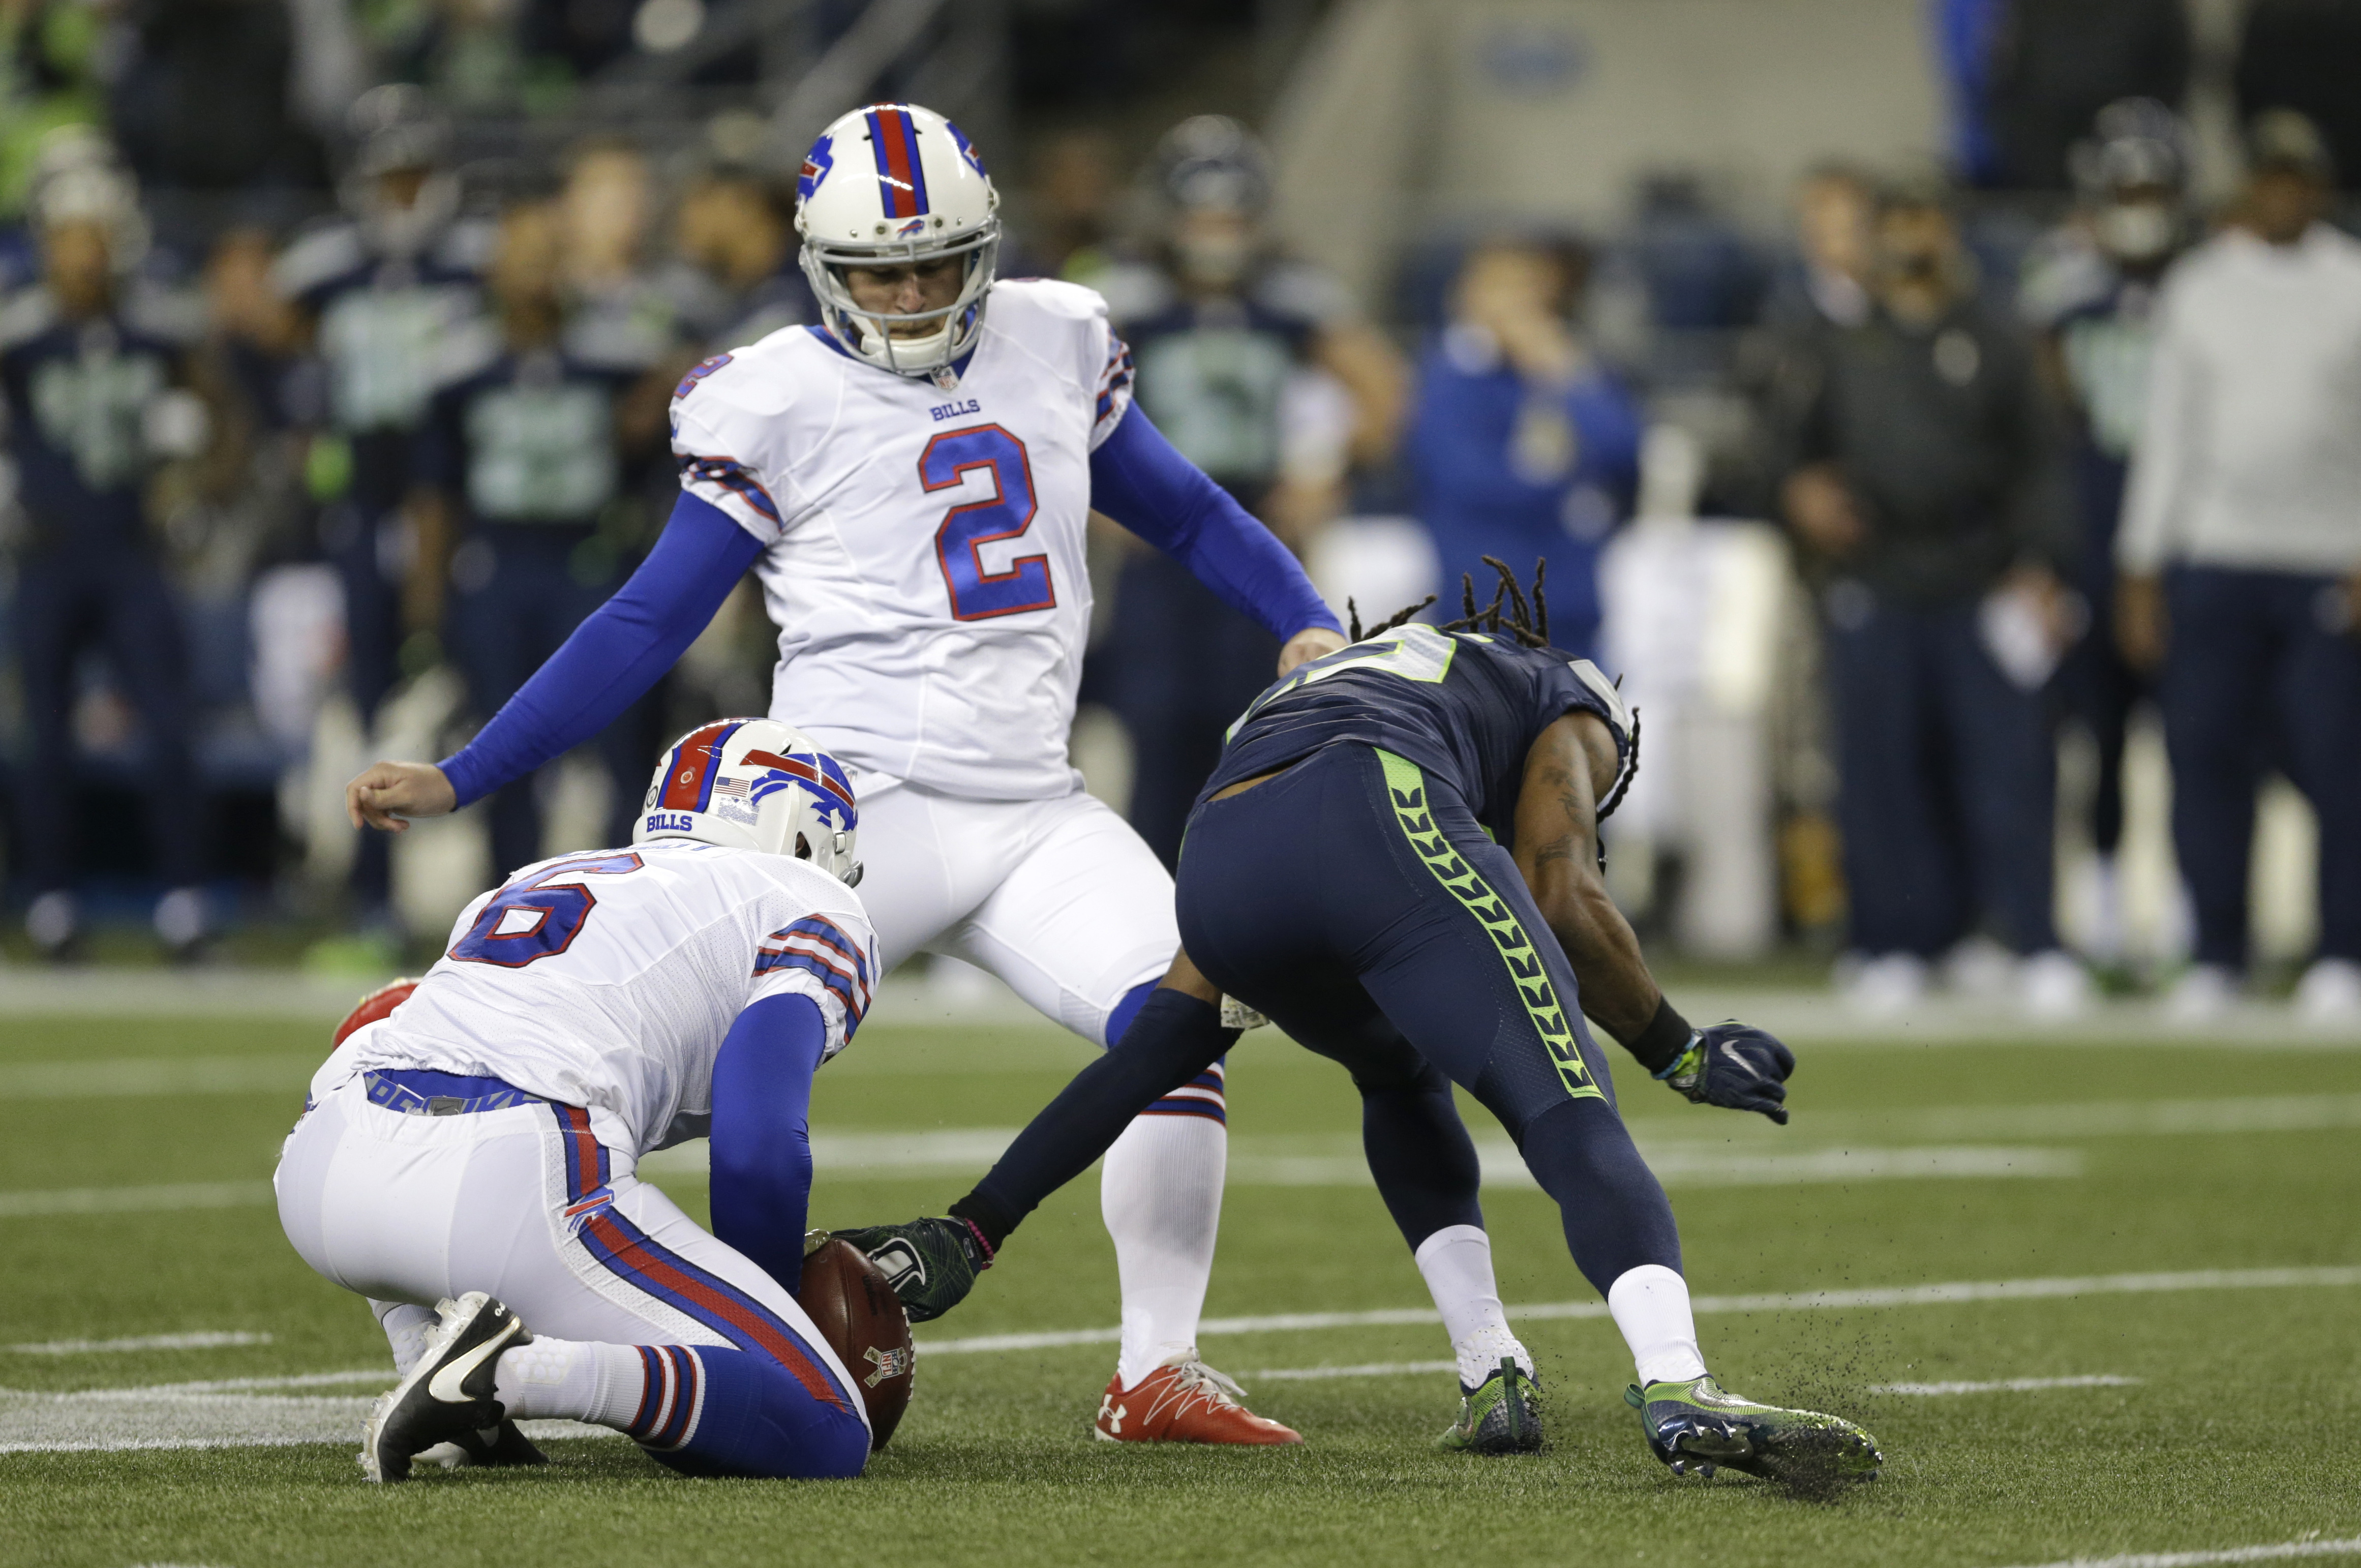 Seattle Seahawks cornerback Richard Sherman, right, reaches out to grab the ball on a failed field goal attempt by Buffalo Bills kicker Dan Carpenter (2) as Colton Schmidt holds in the first half of an NFL football game, Monday, Nov. 7, 2016, in Seattle.